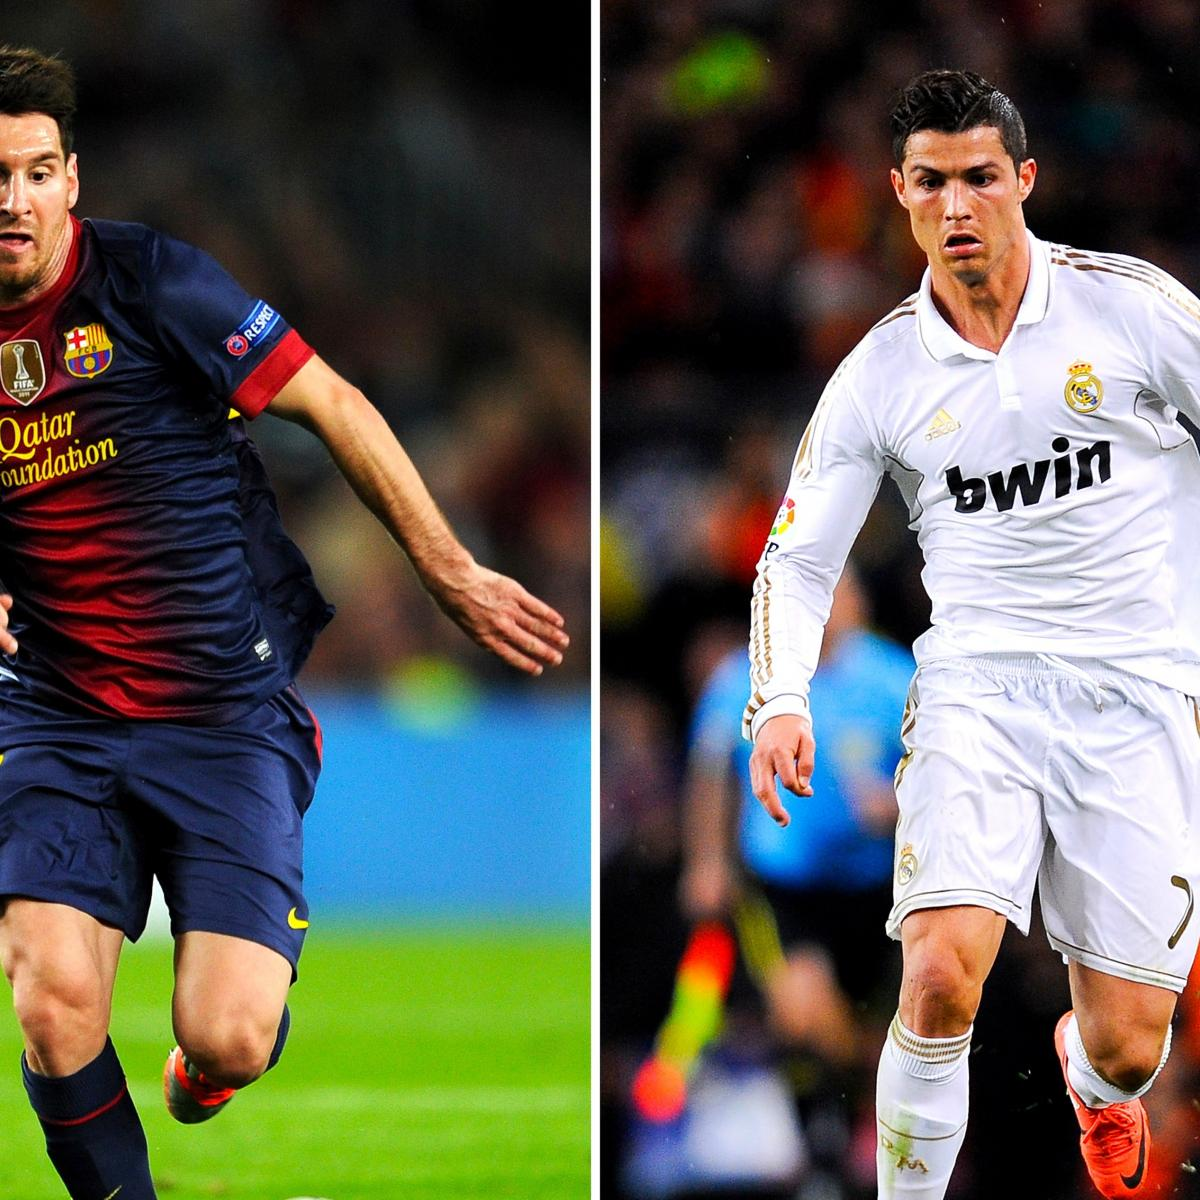 Cristiano Ronaldo I M Not Playing Just Lionel Messi: Lionel Messi Vs. Cristiano Ronaldo: Comparing Their 2013